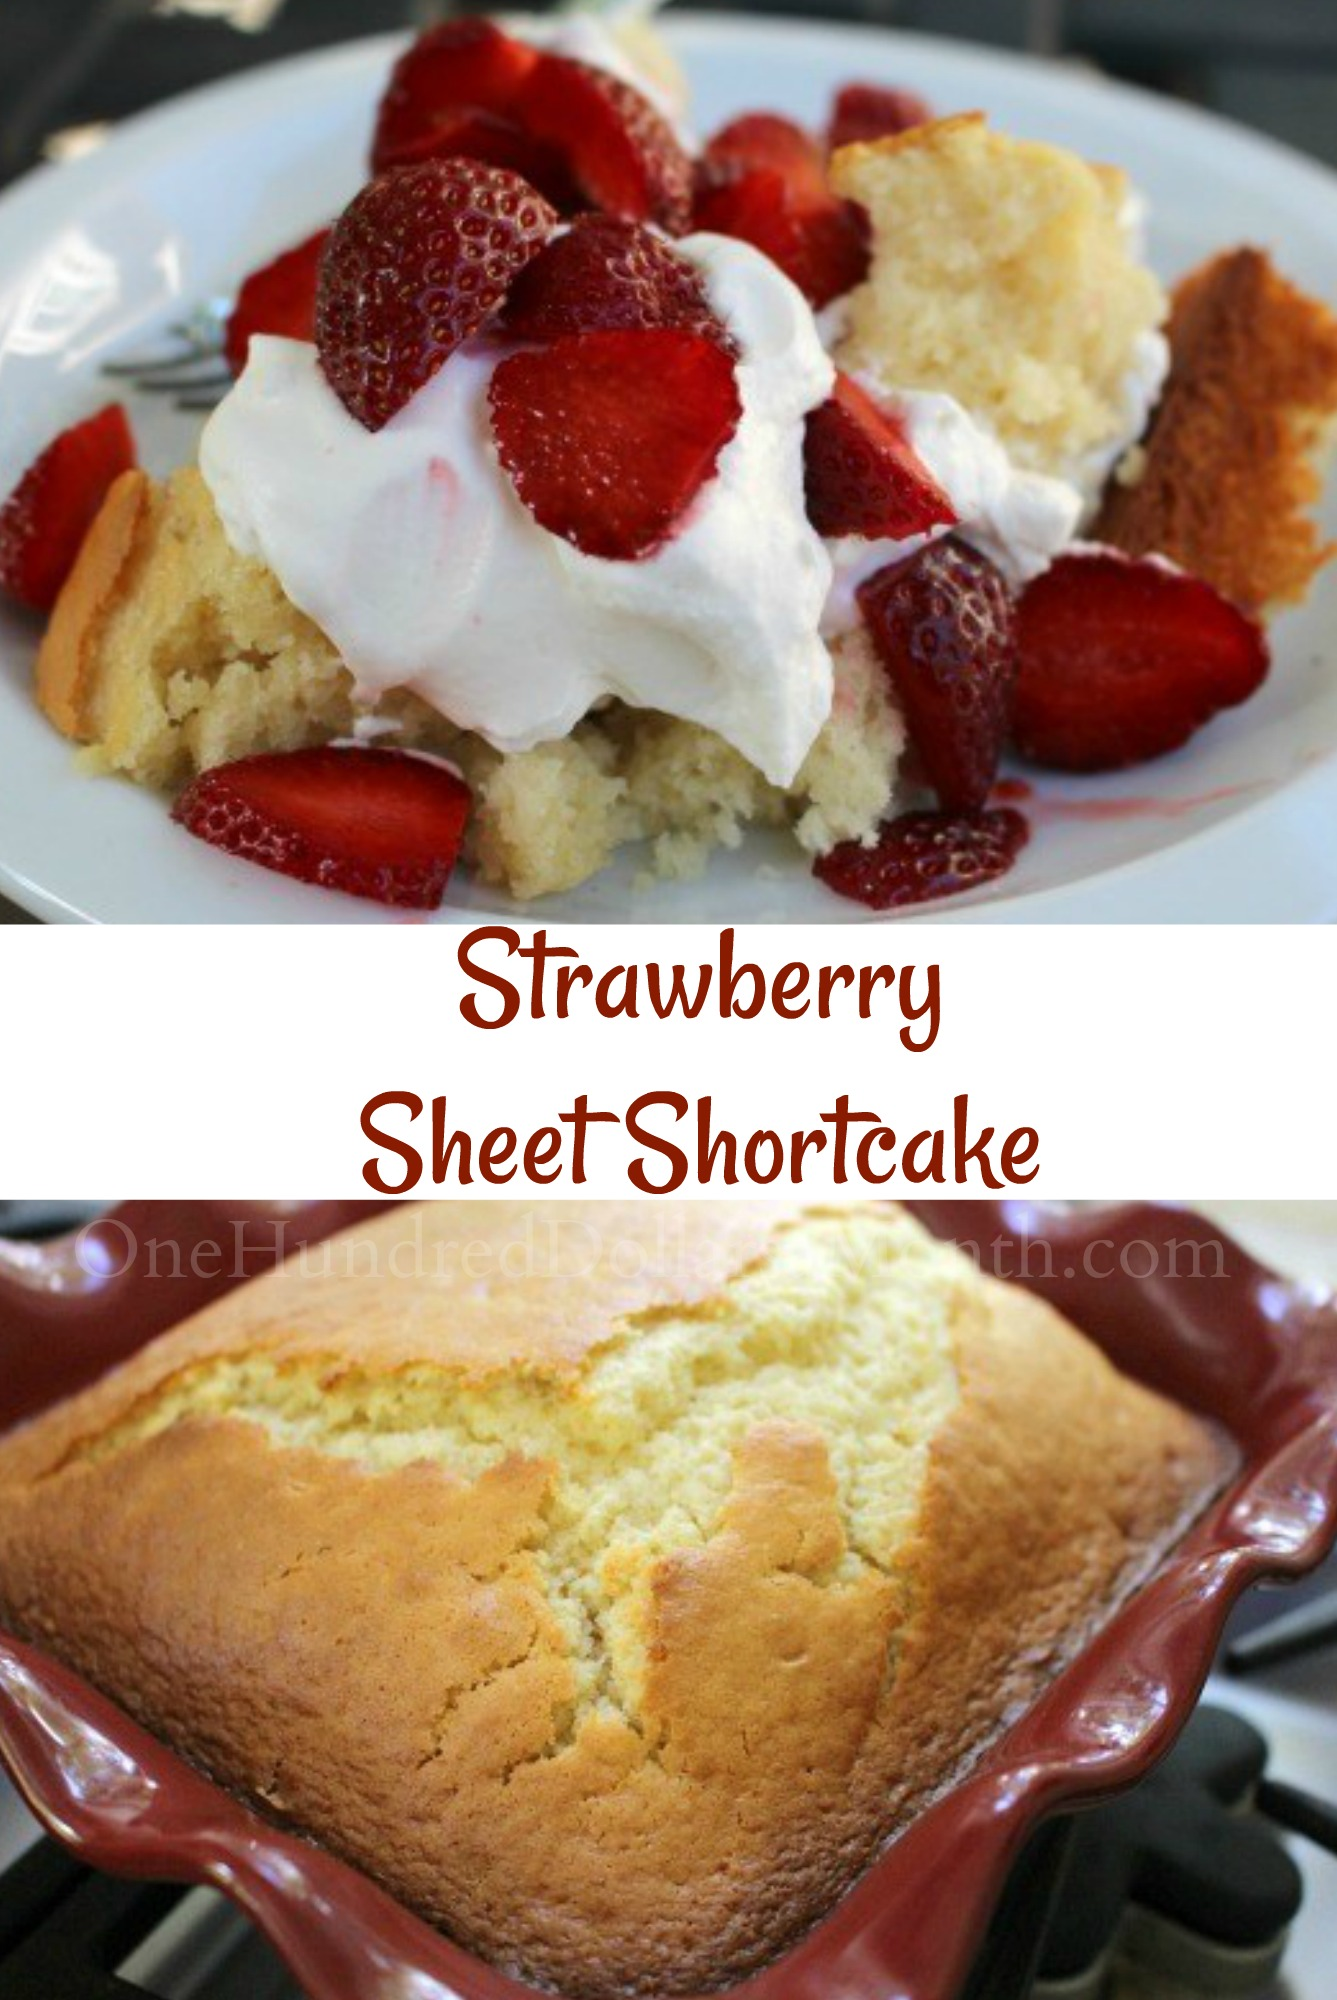 Strawberry Sheet Shortcake